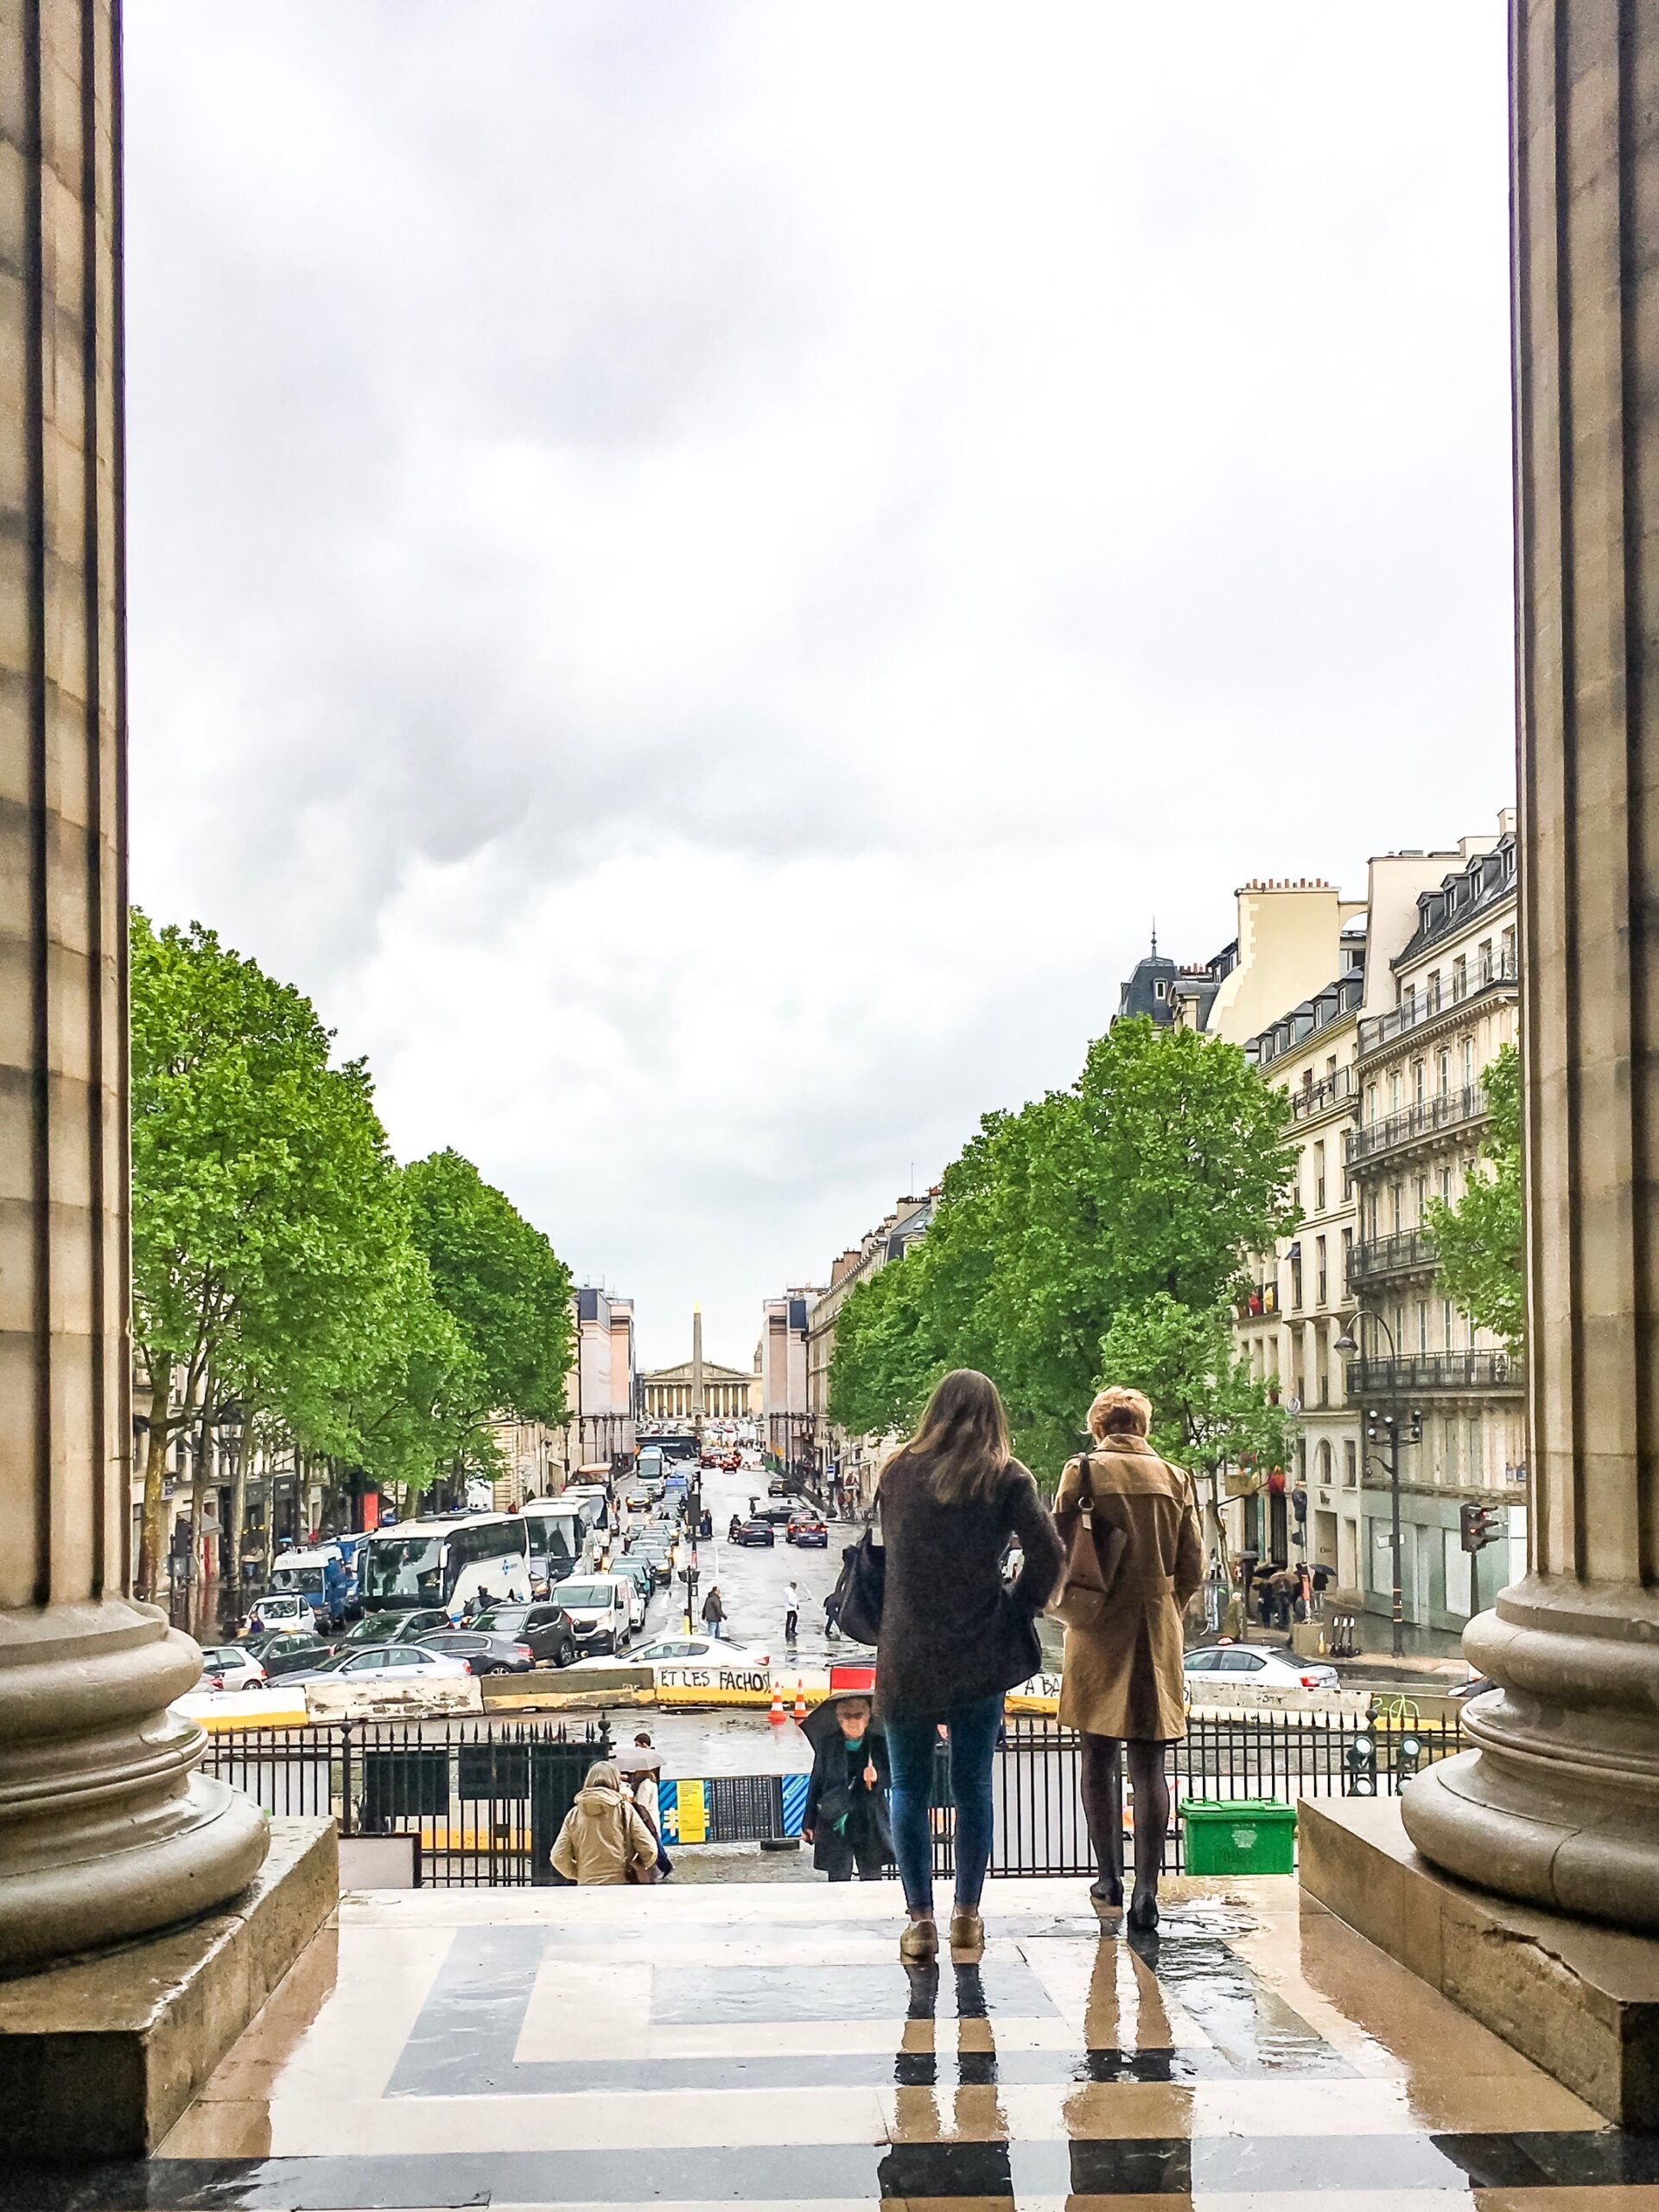 ZWIEDZAMY PARYZ HOW TO VISIT PARIS